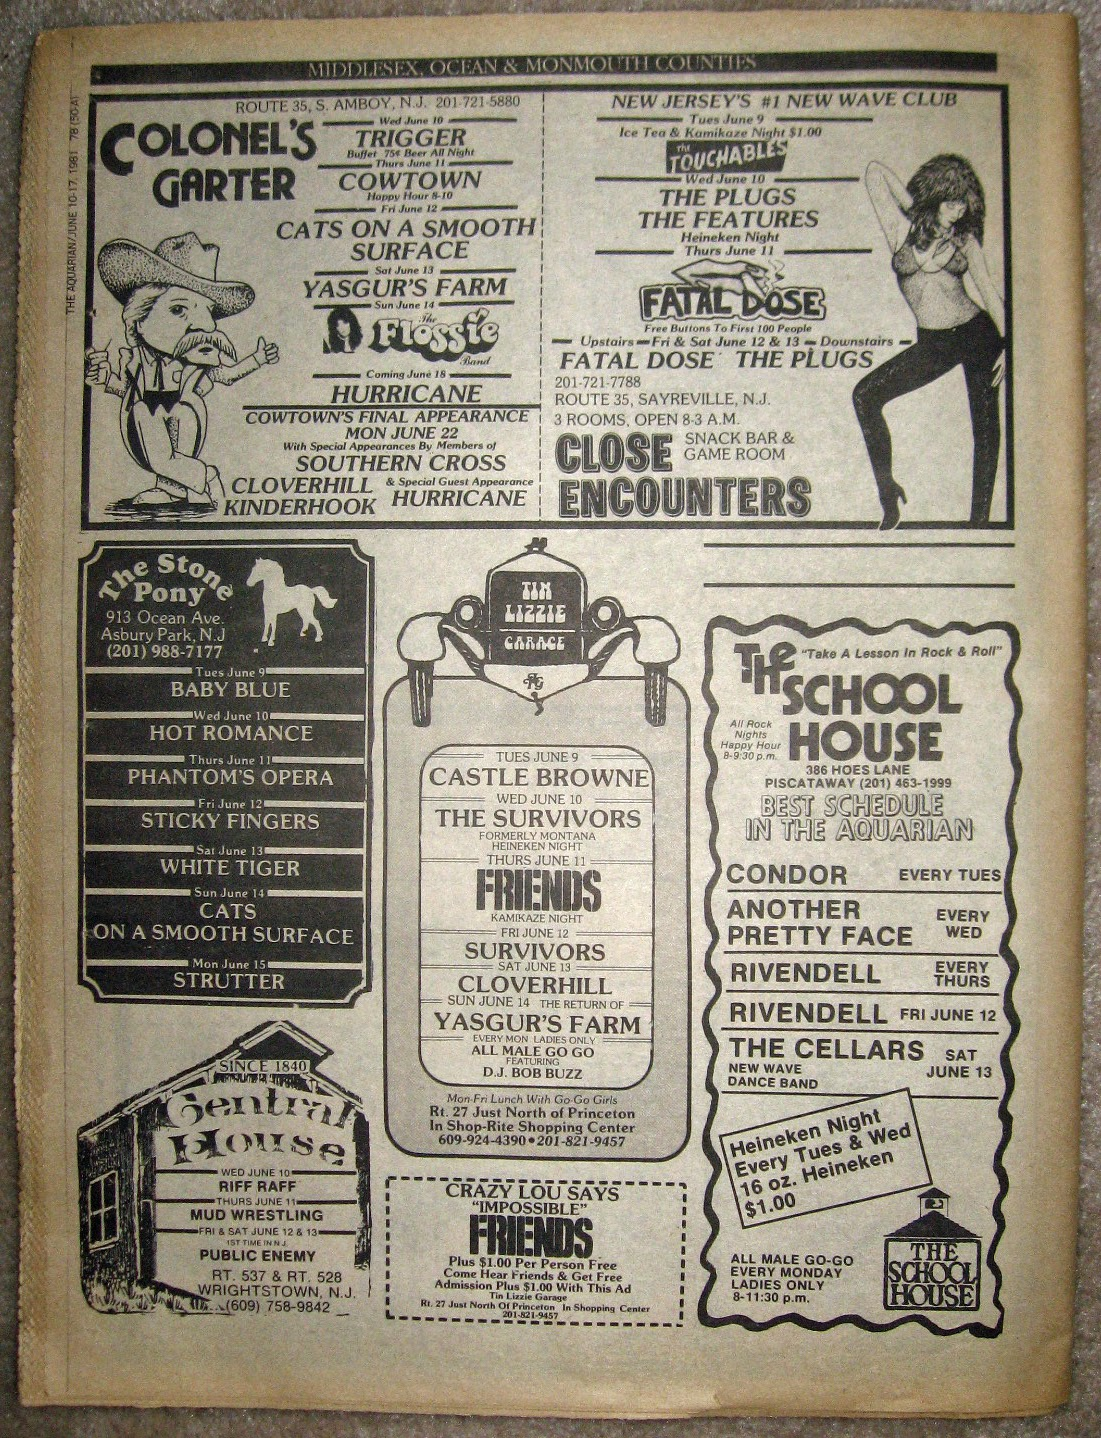 Colonel's Garter - The Stone Pony - Tin Lizzie - Close Encounter's - The School House - Central House band line ups 1981